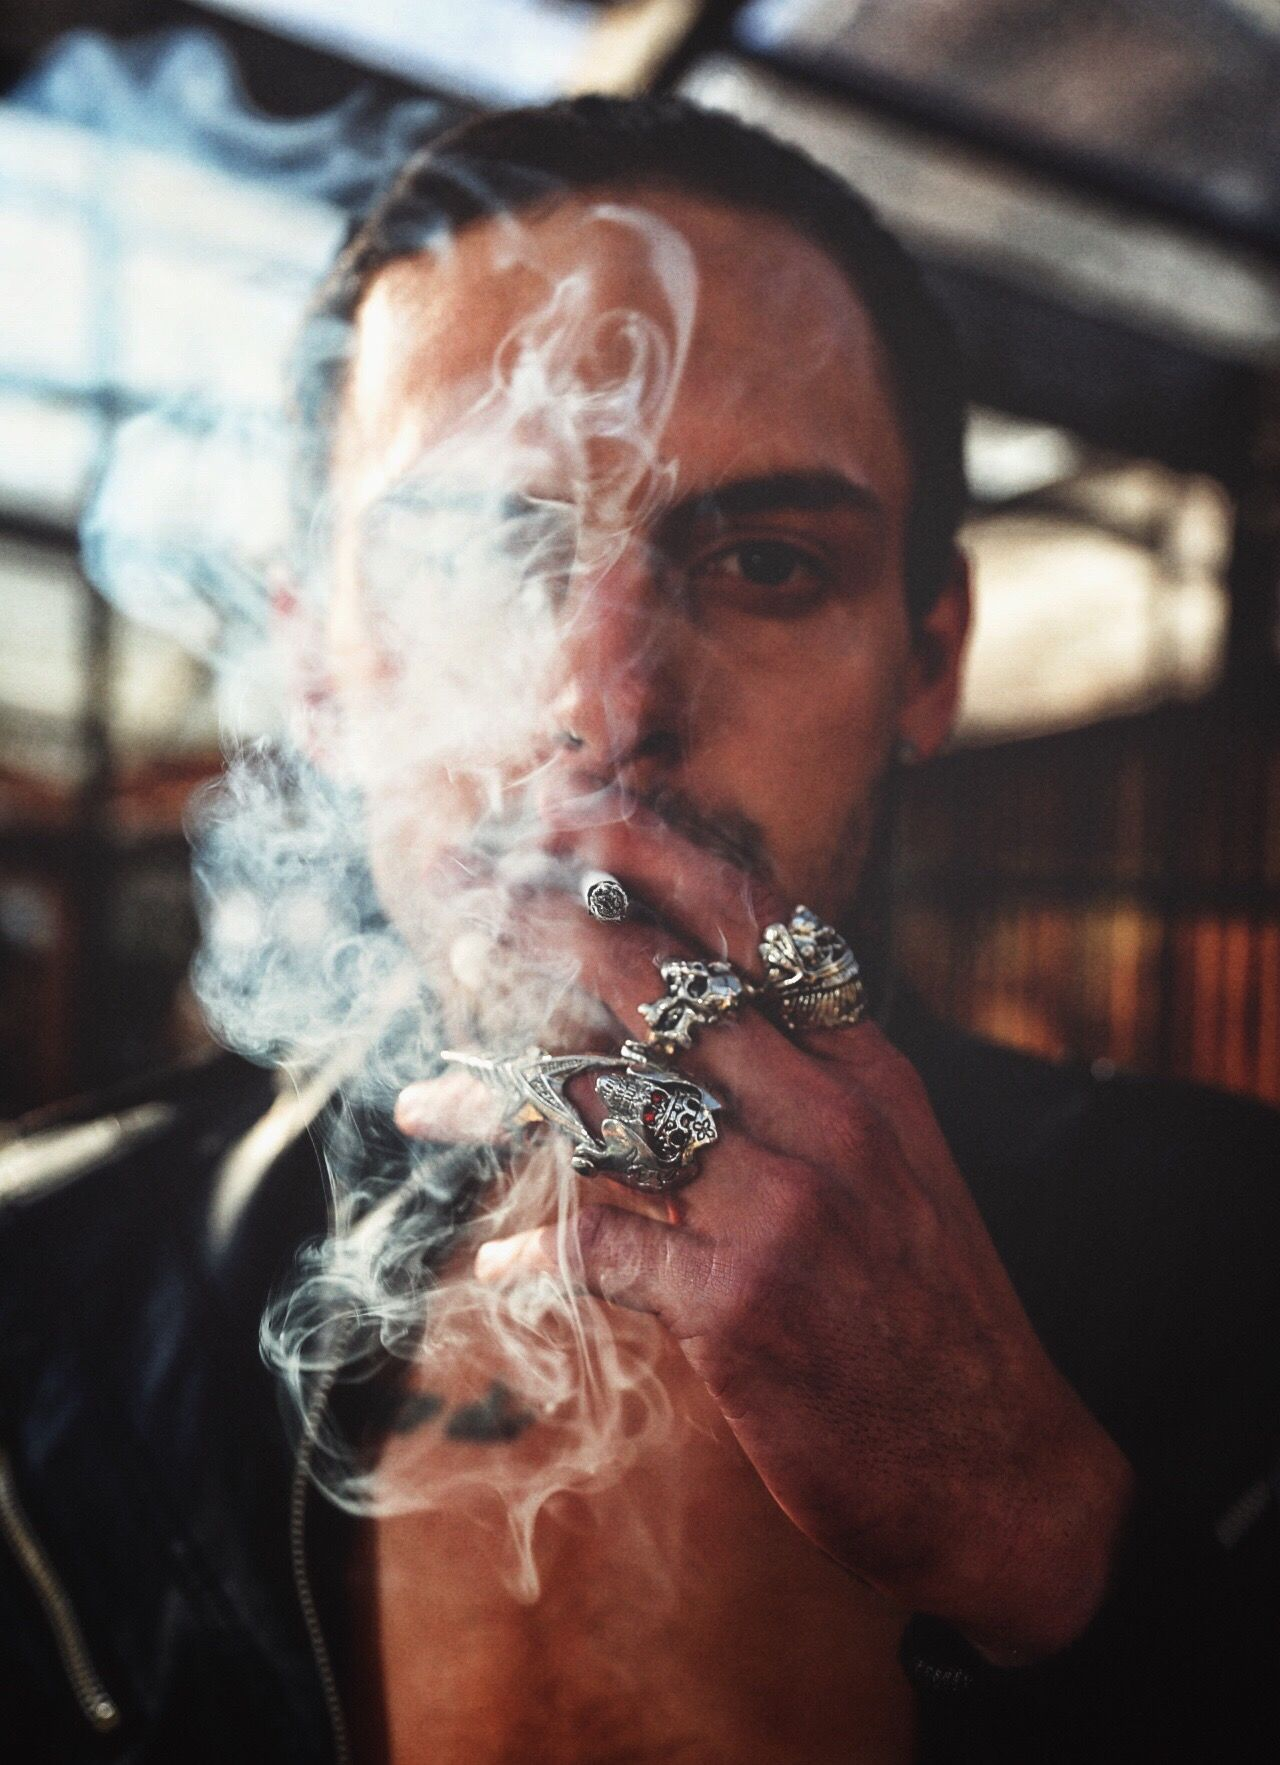 Fashion smoking - activity smoking issues smoke - physical structure lifestyles real people indoors ring Runway human hand fashion photography human body part